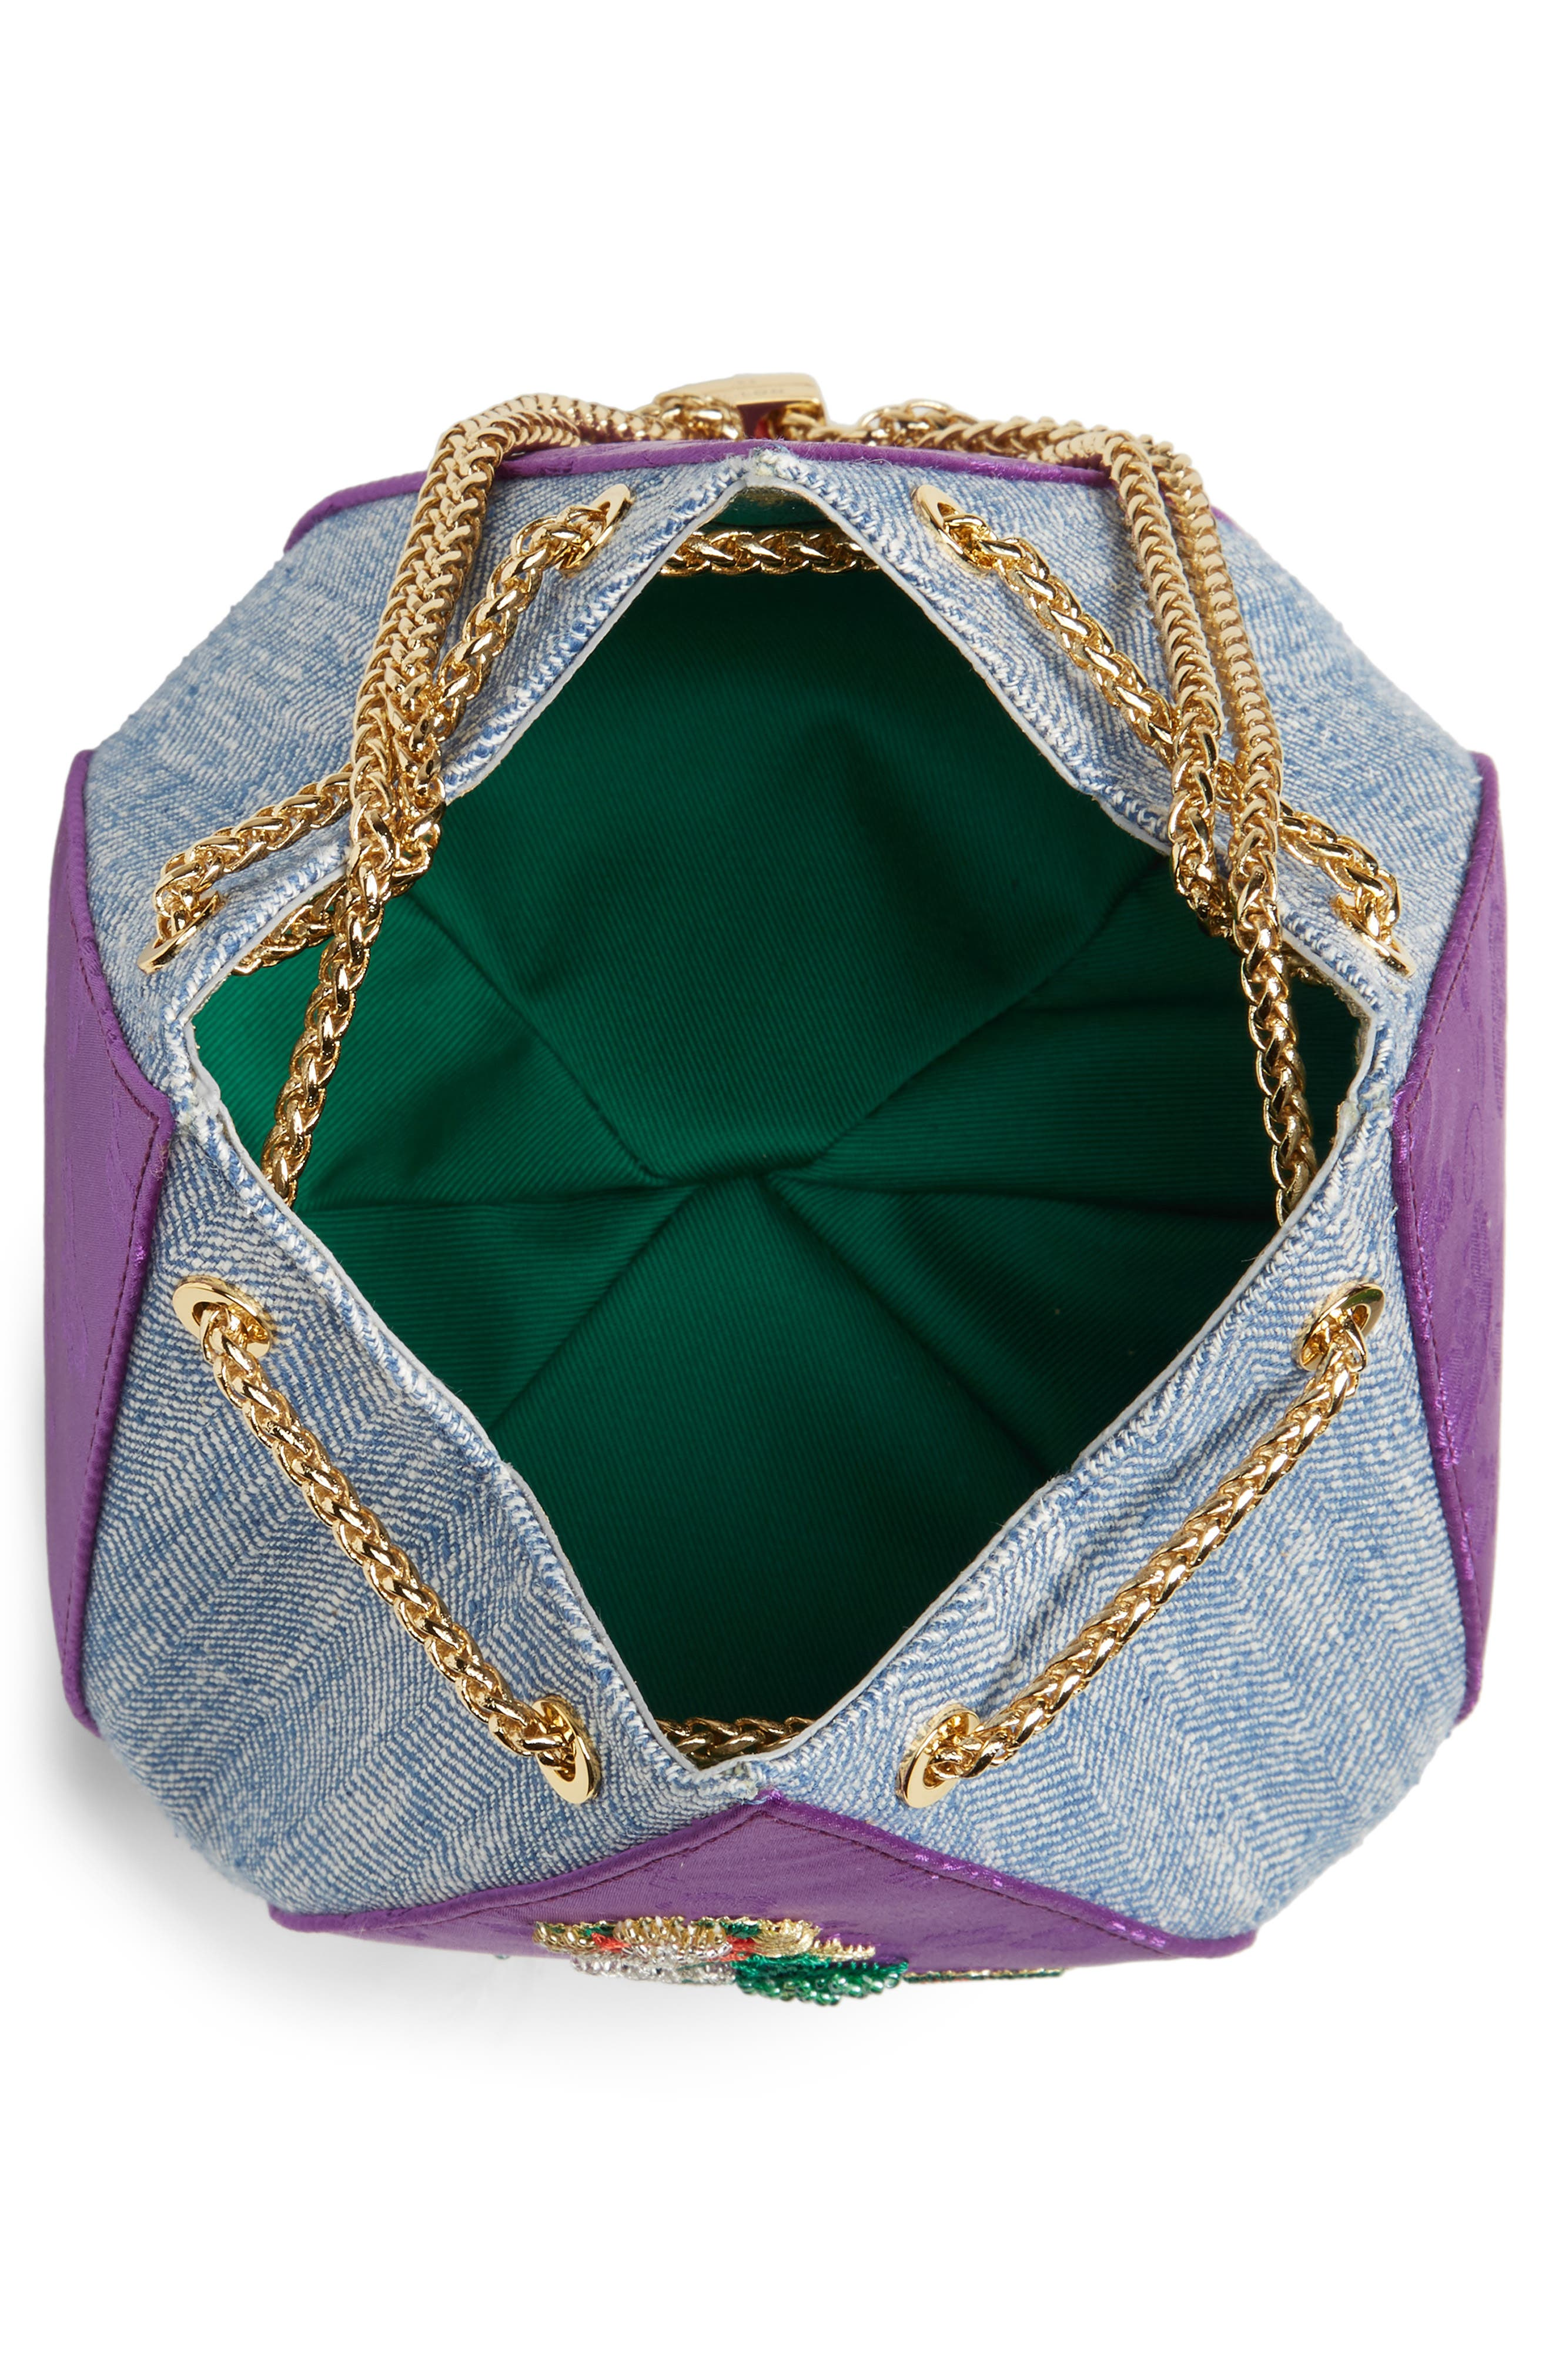 THE VOLON, Cindy Flower Embroidered Brocade & Denim Clutch, Alternate thumbnail 5, color, CHECK PURPLE